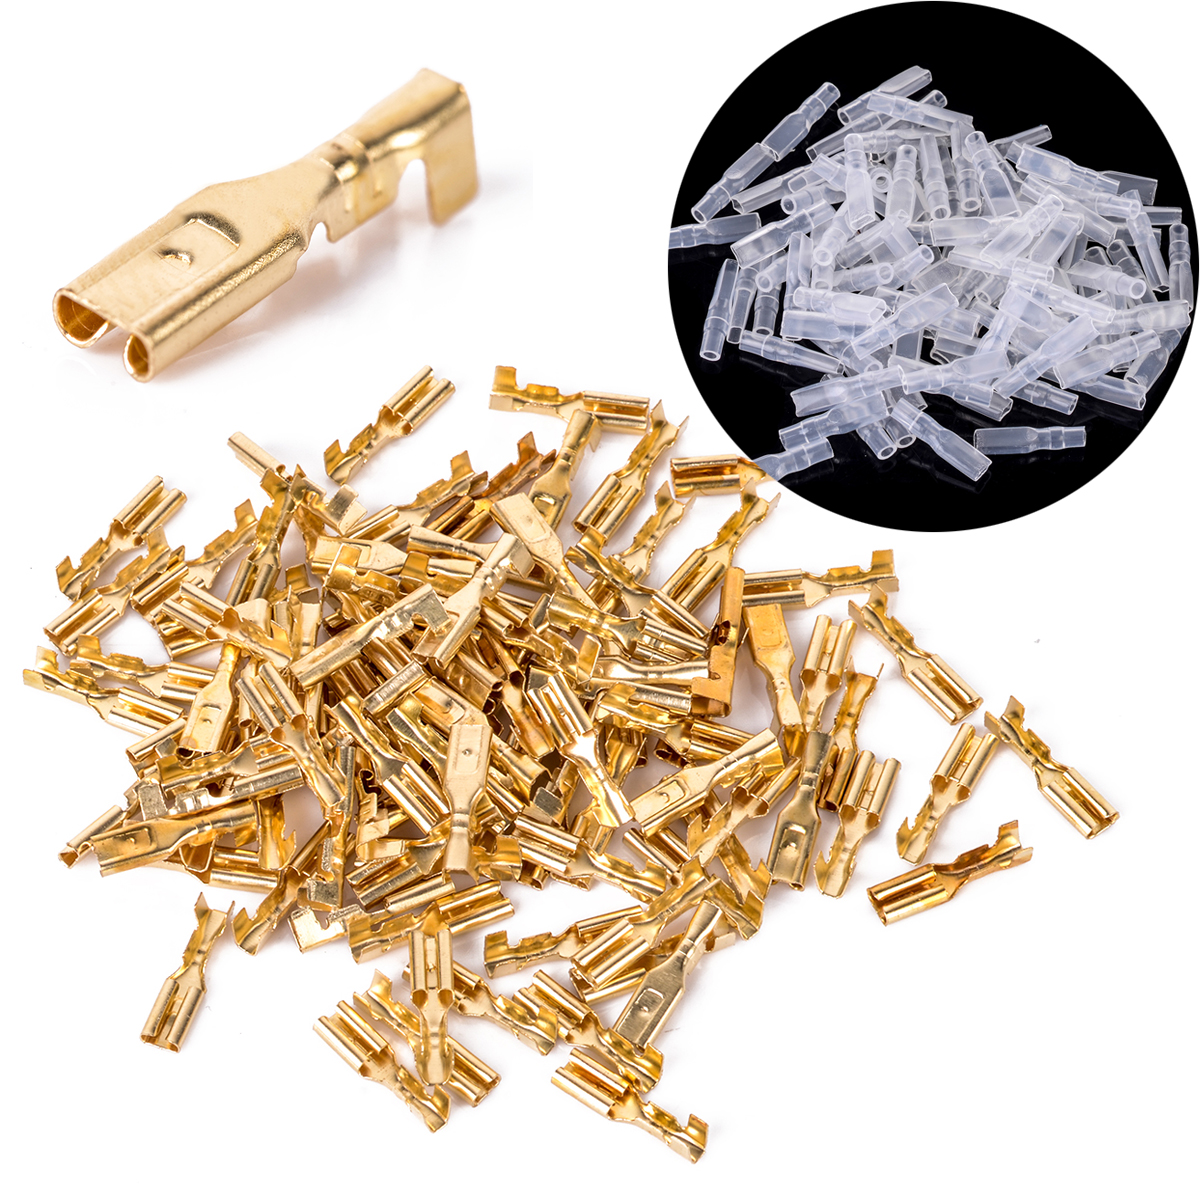 100Set Female Spade Connectors 2.8mm Brass Crimp Terminal 22-16AWG with Insulating Sleeve цена